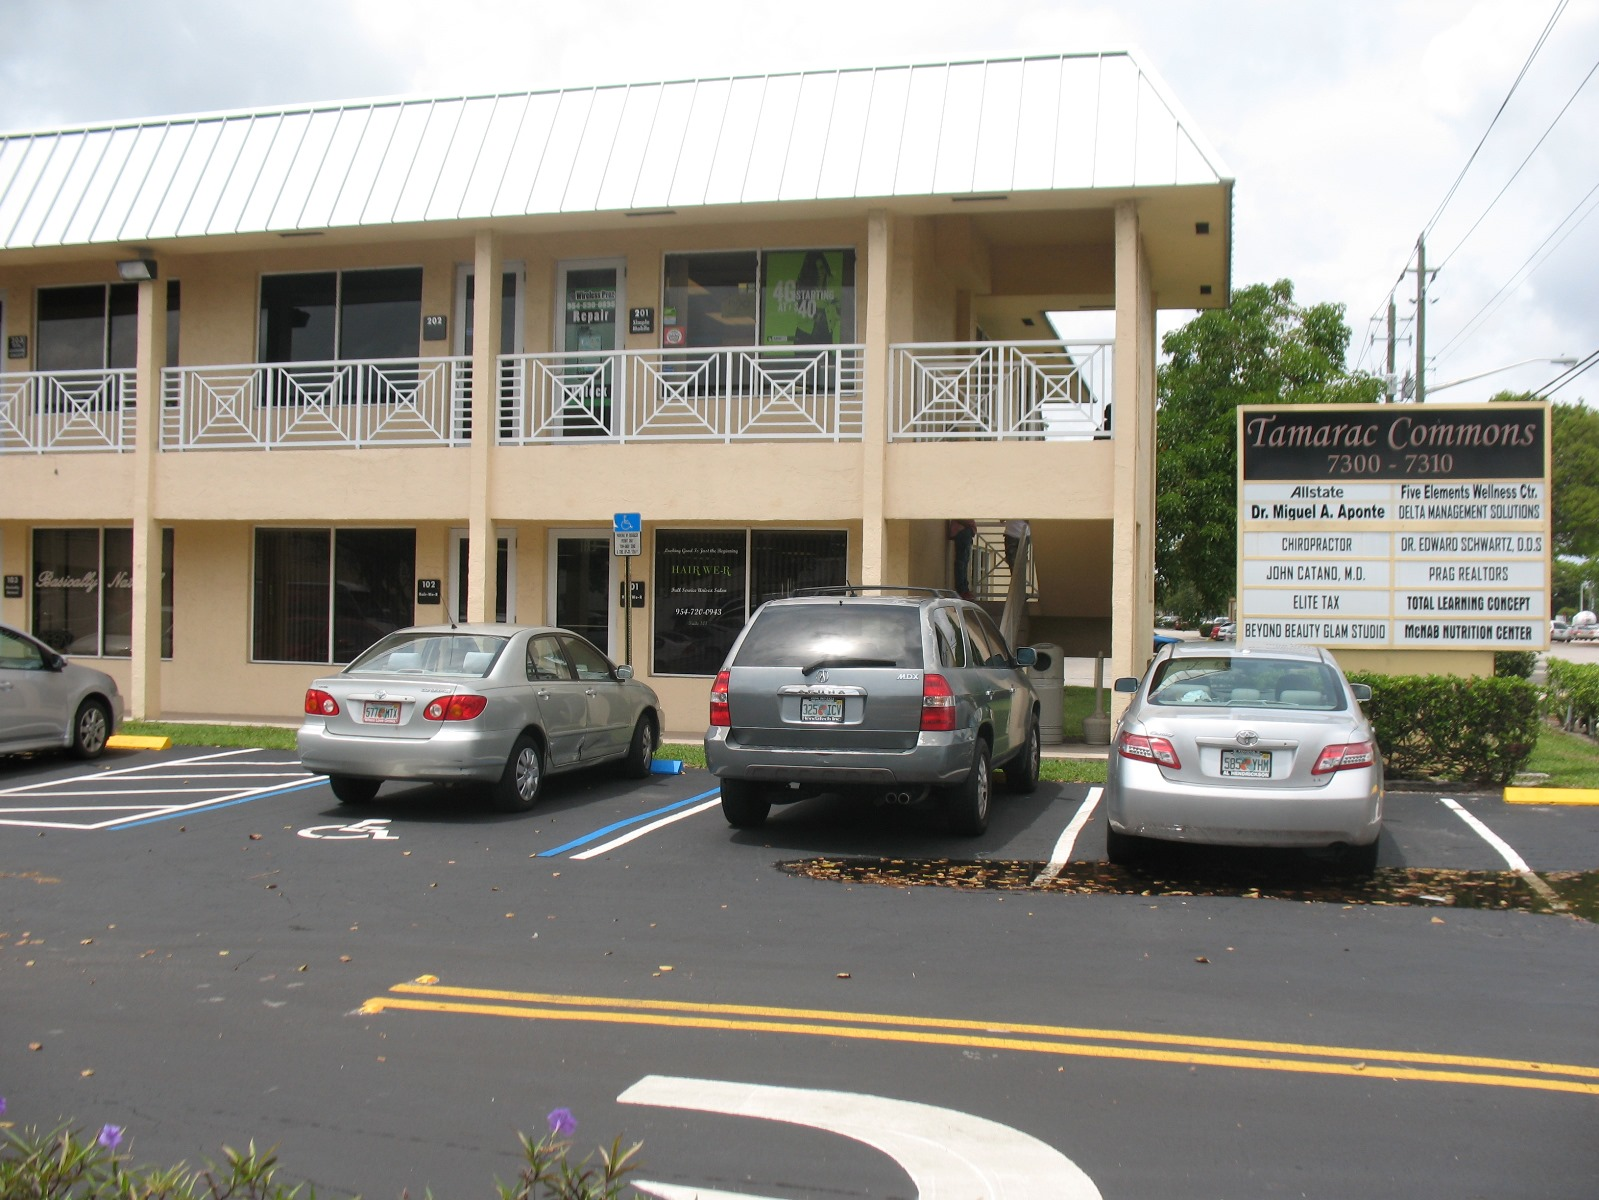 For Lease - 7300 & 7310 West Mcnab Road - Tamarac